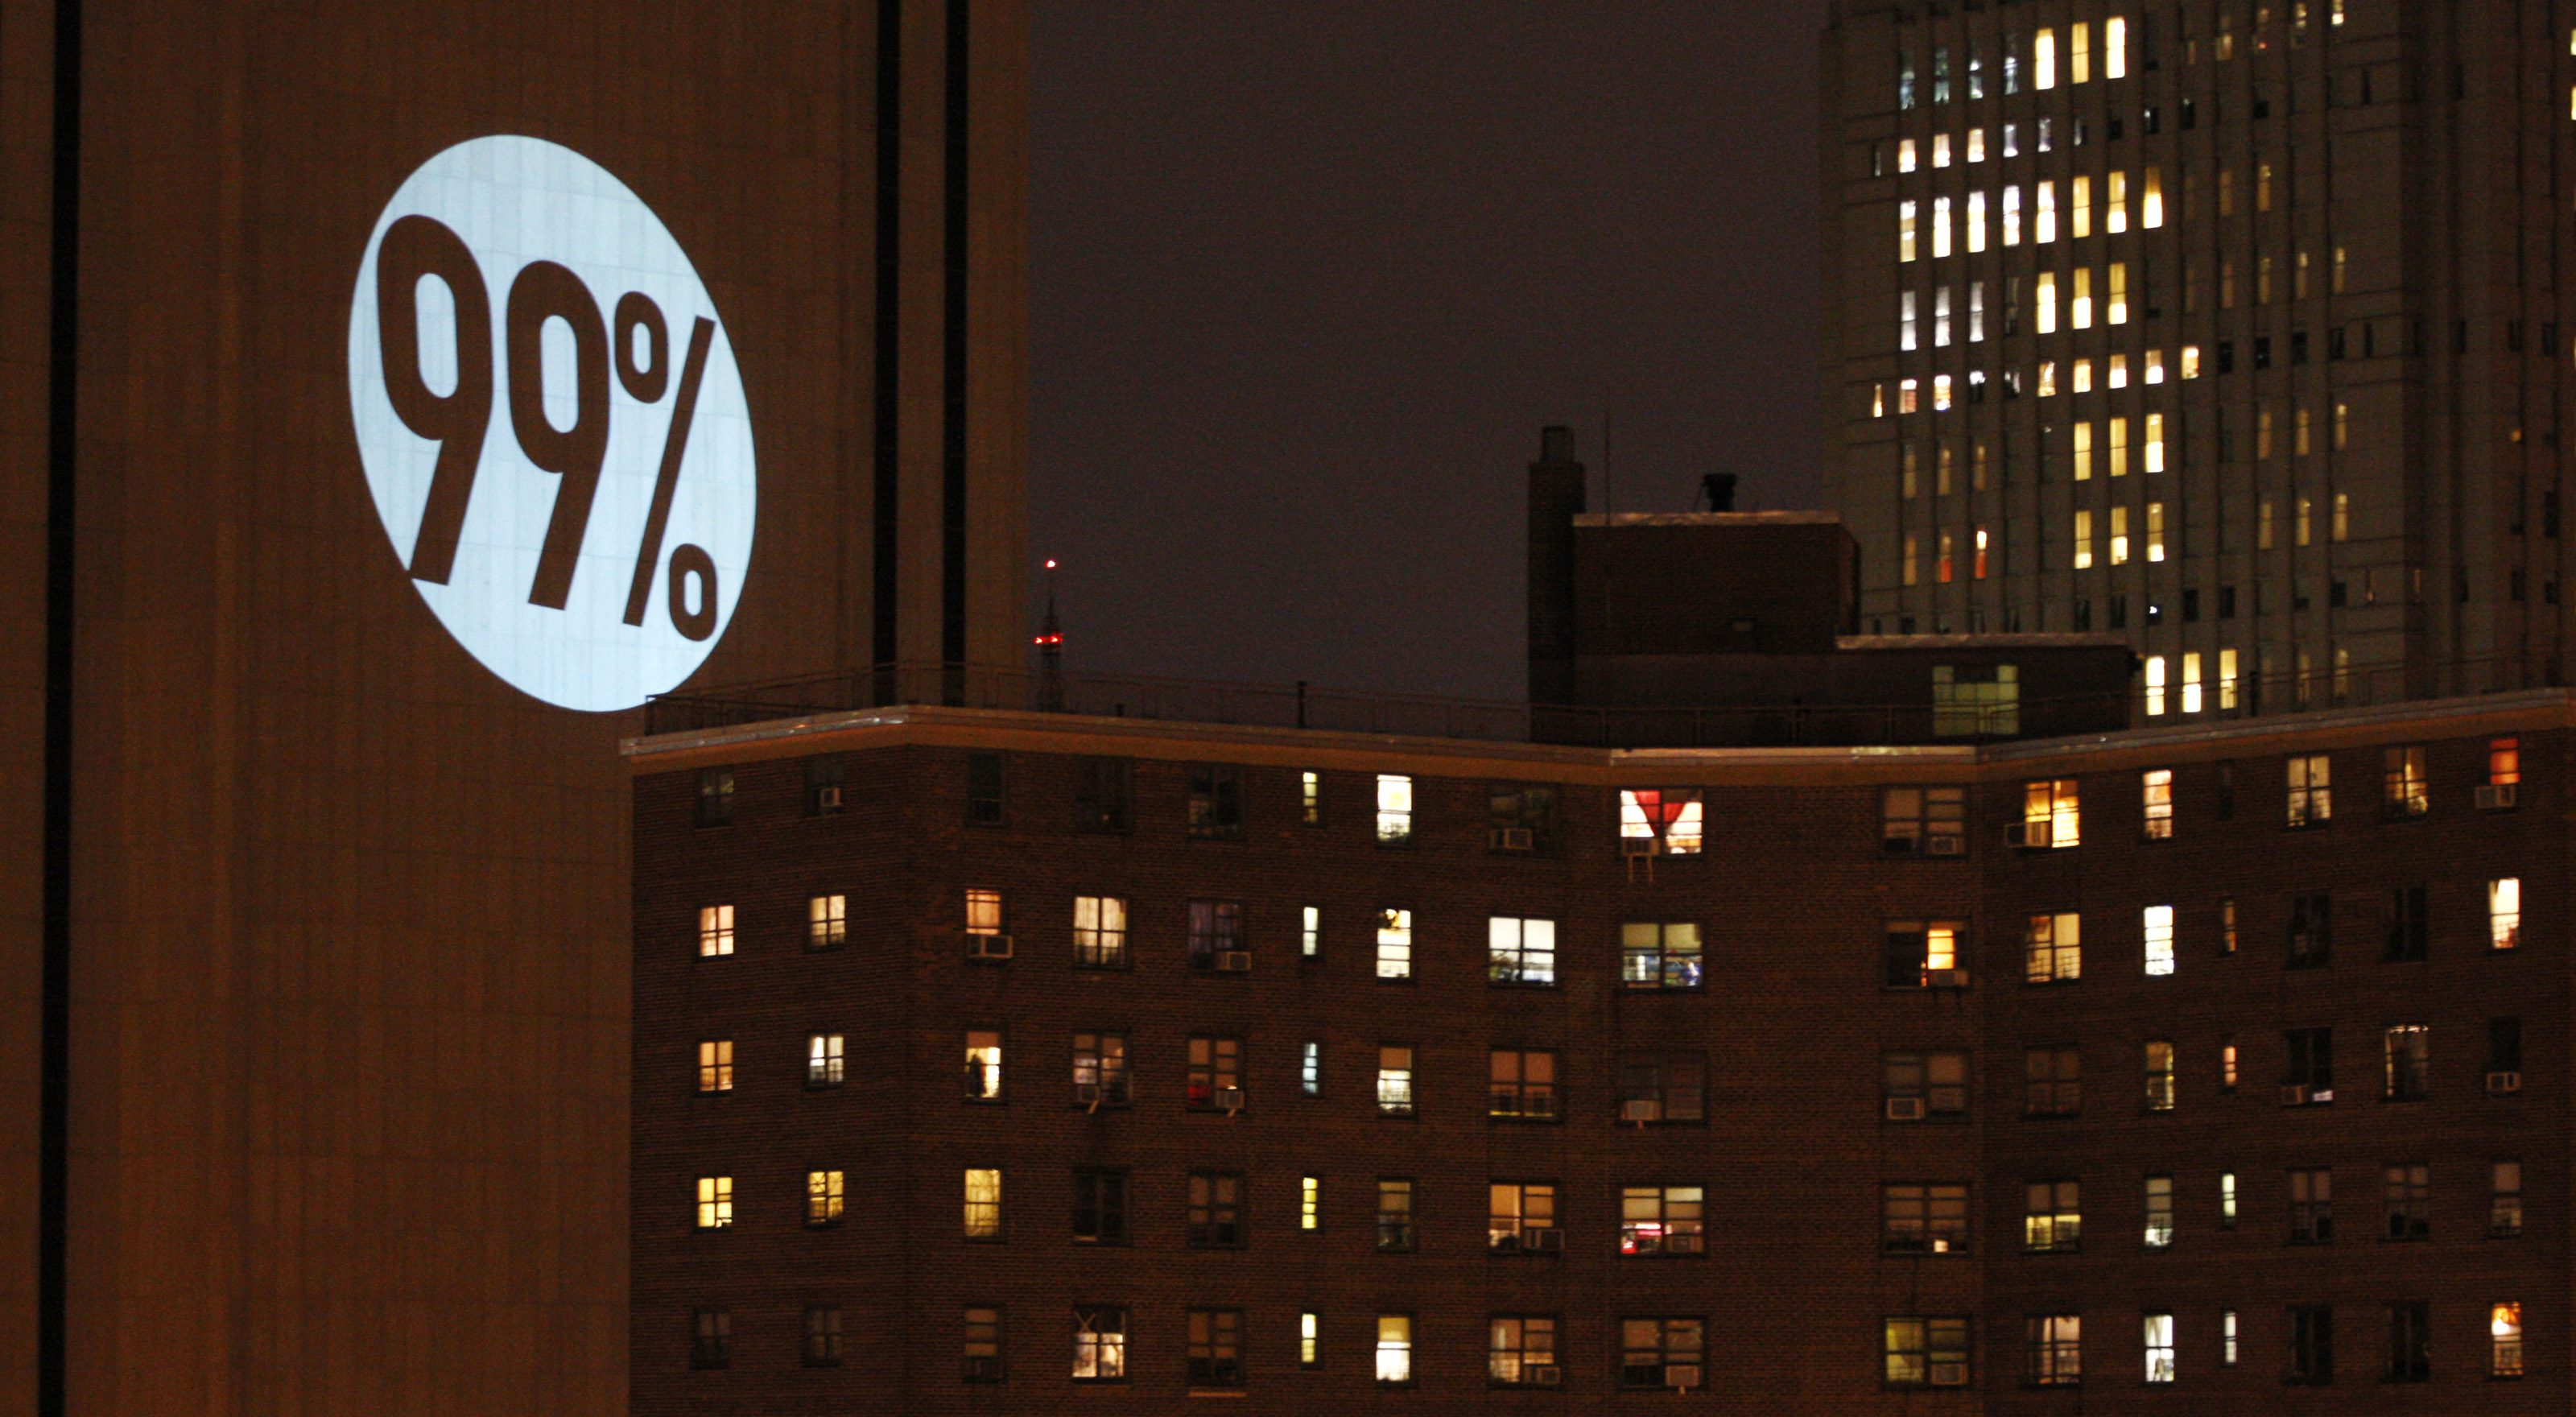 A 99% sign is projected on the Verizon Building by Occupy Wall Street demonstrators during what protest organizers called a day of action in New York November 17, 2011. New York police prevented protesters from shutting down Wall Street on Thursday, arresting more than 200 people in repeated clashes with an unexpectedly small but spirited Occupy Wall Street rally.     (UNITED STATES - Tags: BUSINESS CIVIL UNREST CITYSPACE TPX IMAGES OF THE DAY) - GM1E7BI0YTF01